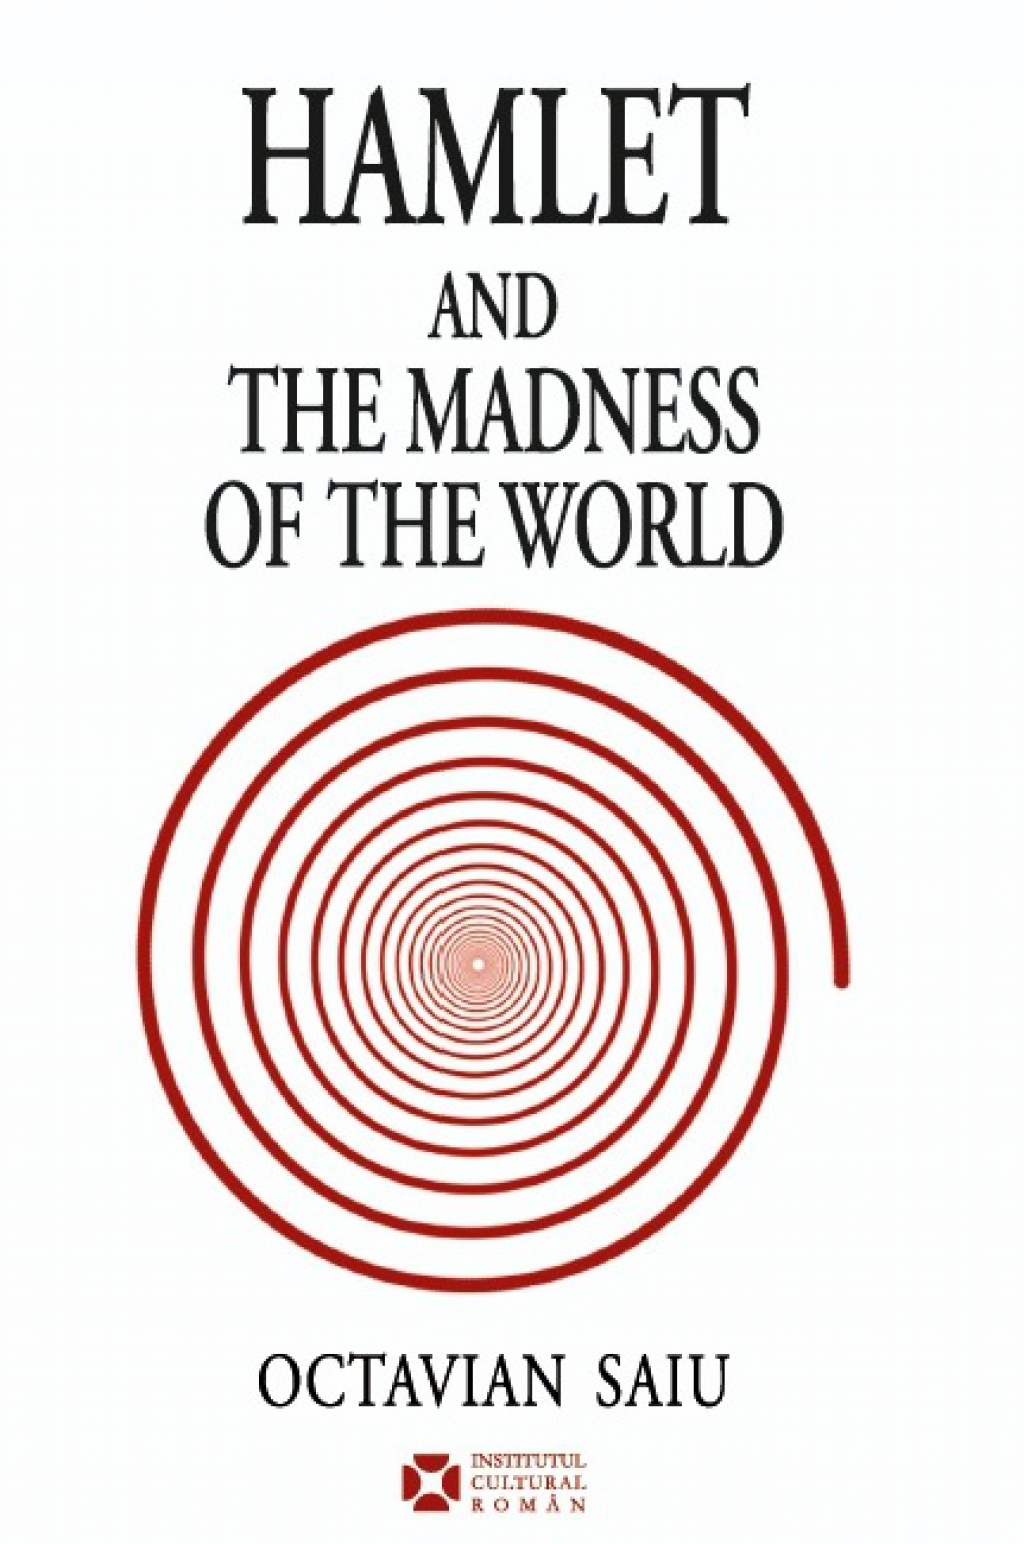 Hamlet and the madness of the world octavian saiu